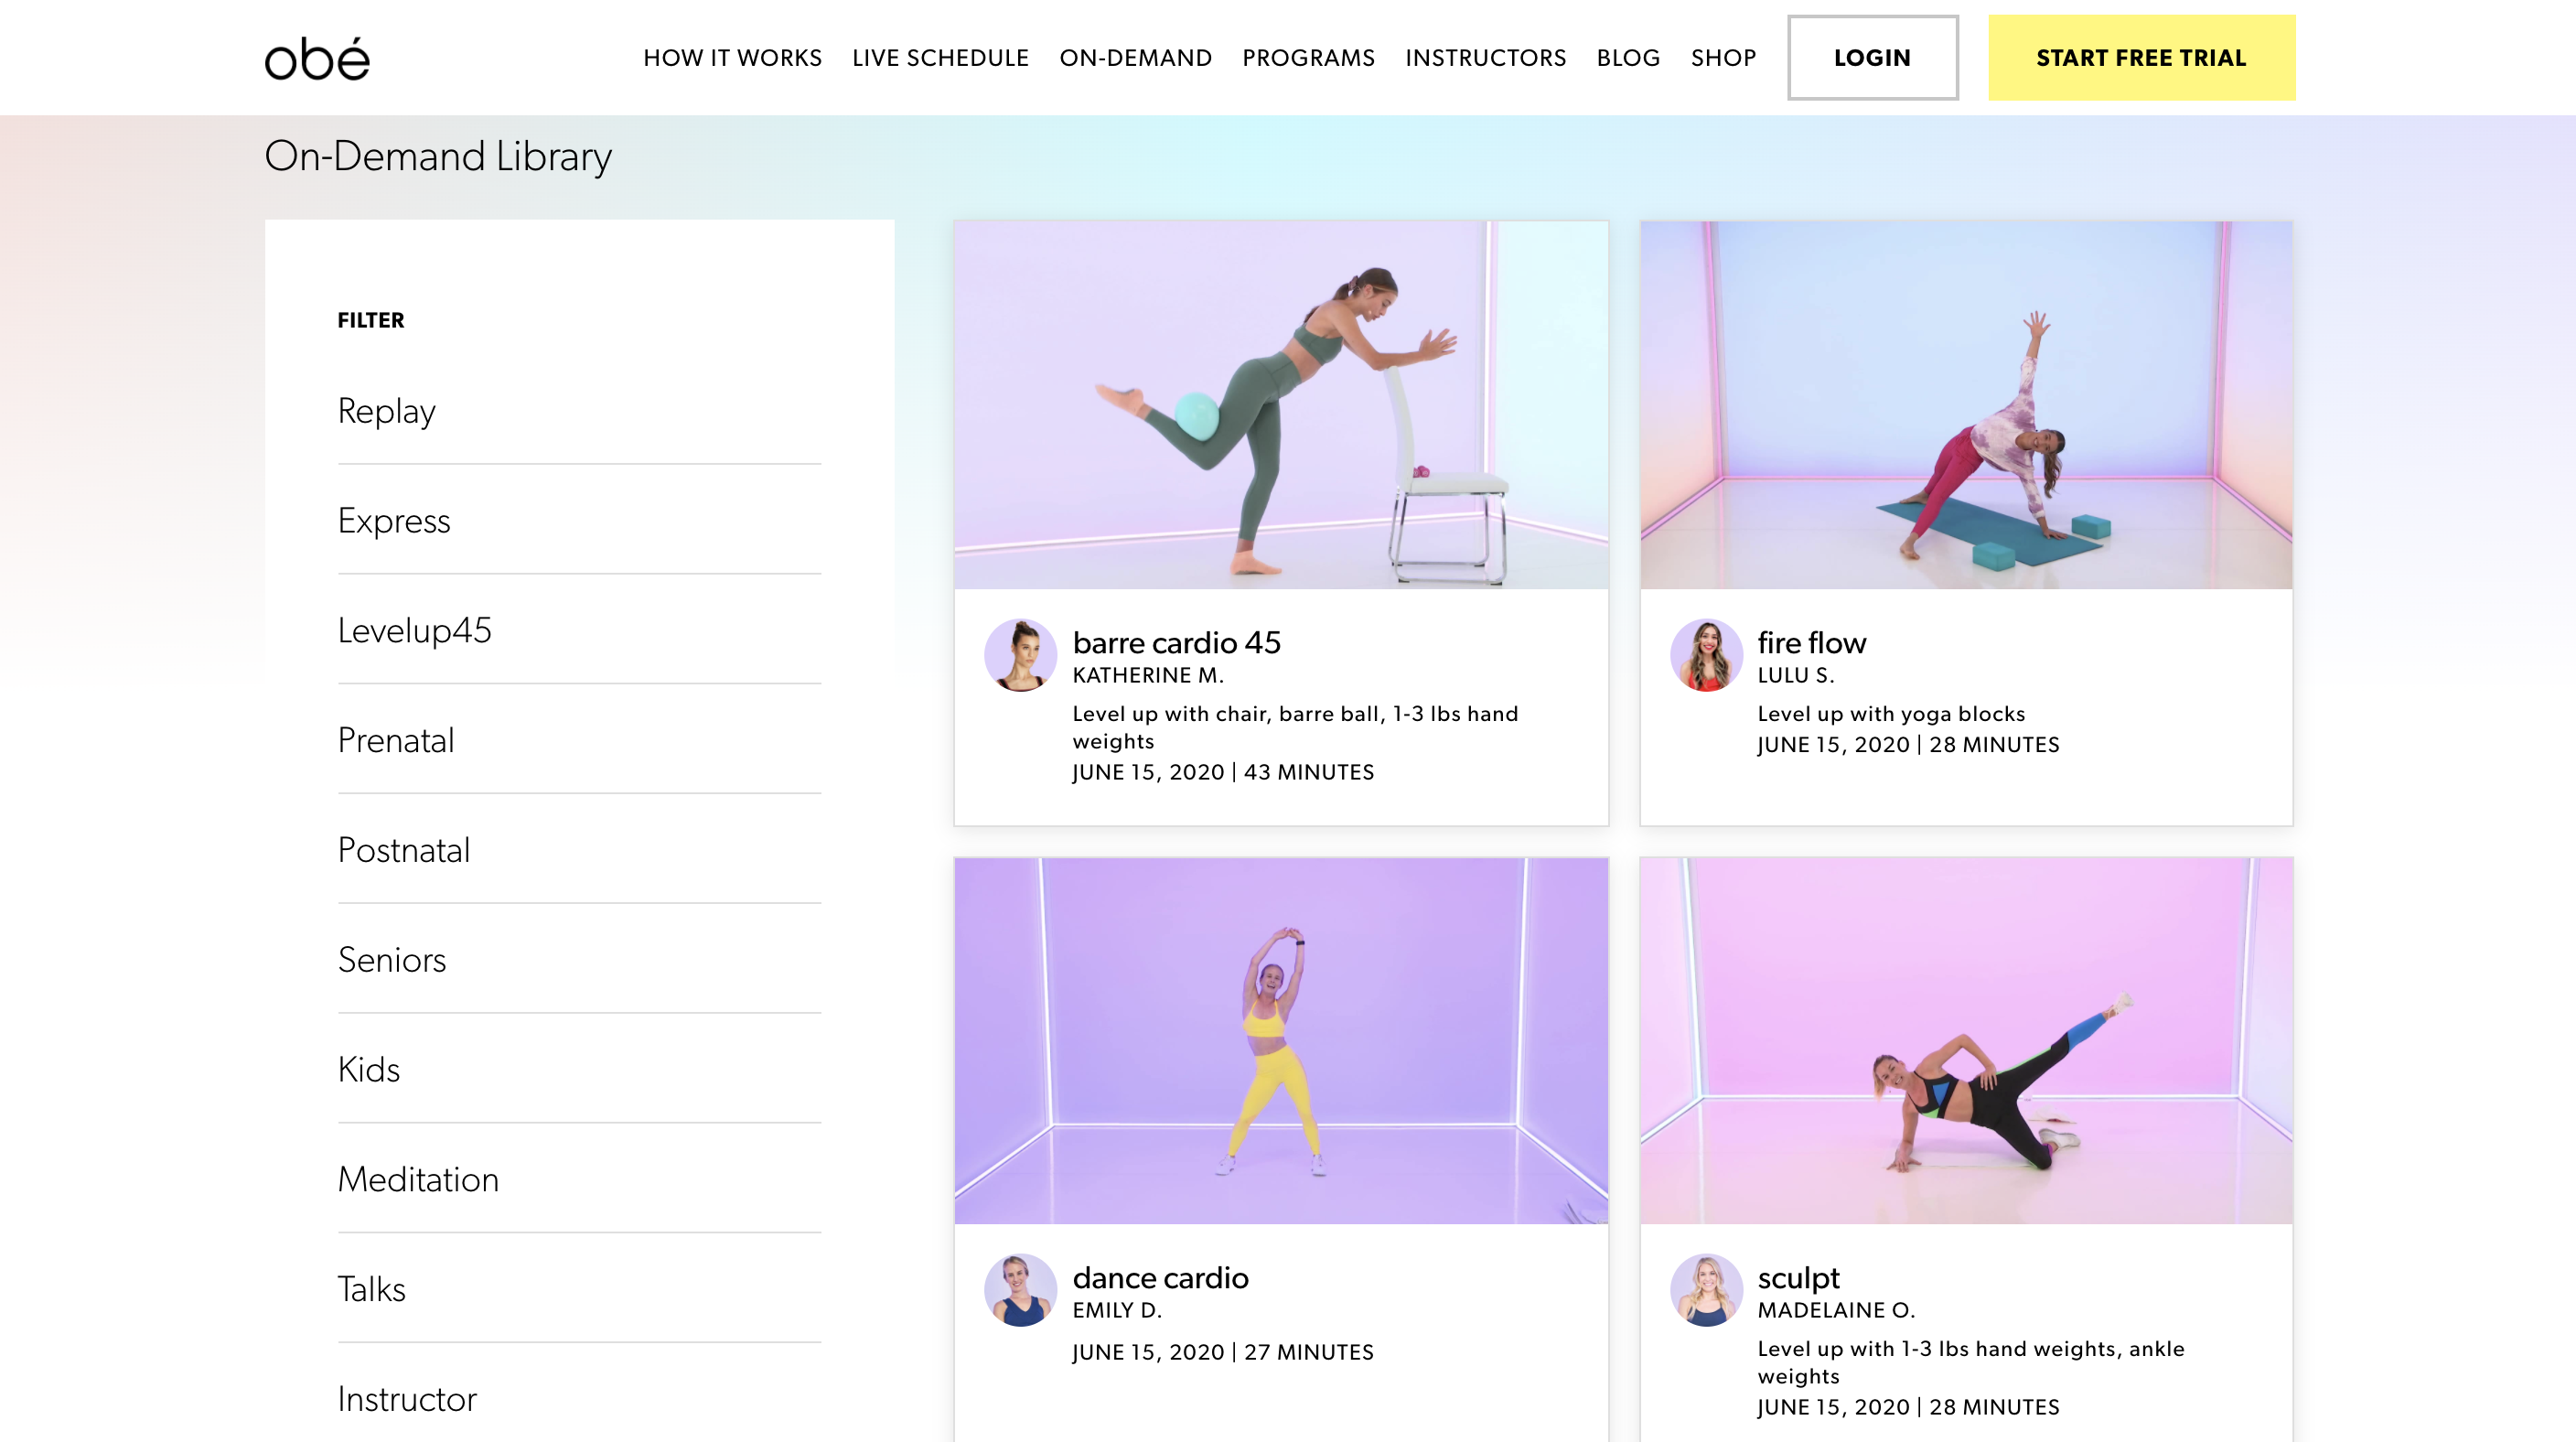 The on-demand library and a grid showing different types of workouts